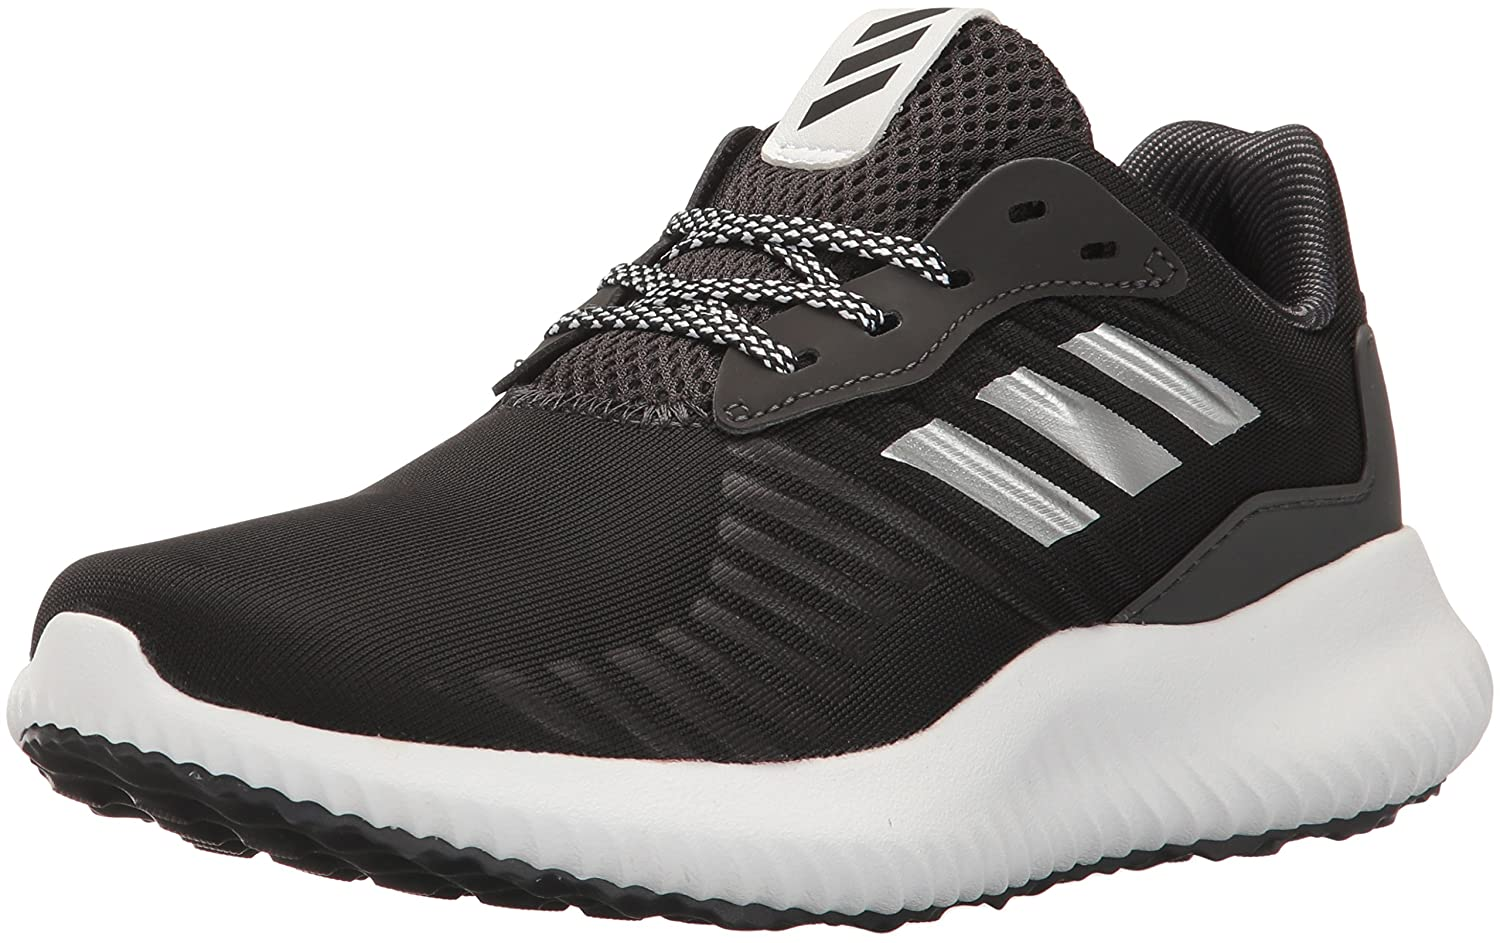 adidas Women's Alphabounce Rc W Running Shoe B01MSQH9XA 6 B(M) US|Core Black/White/Utility Black